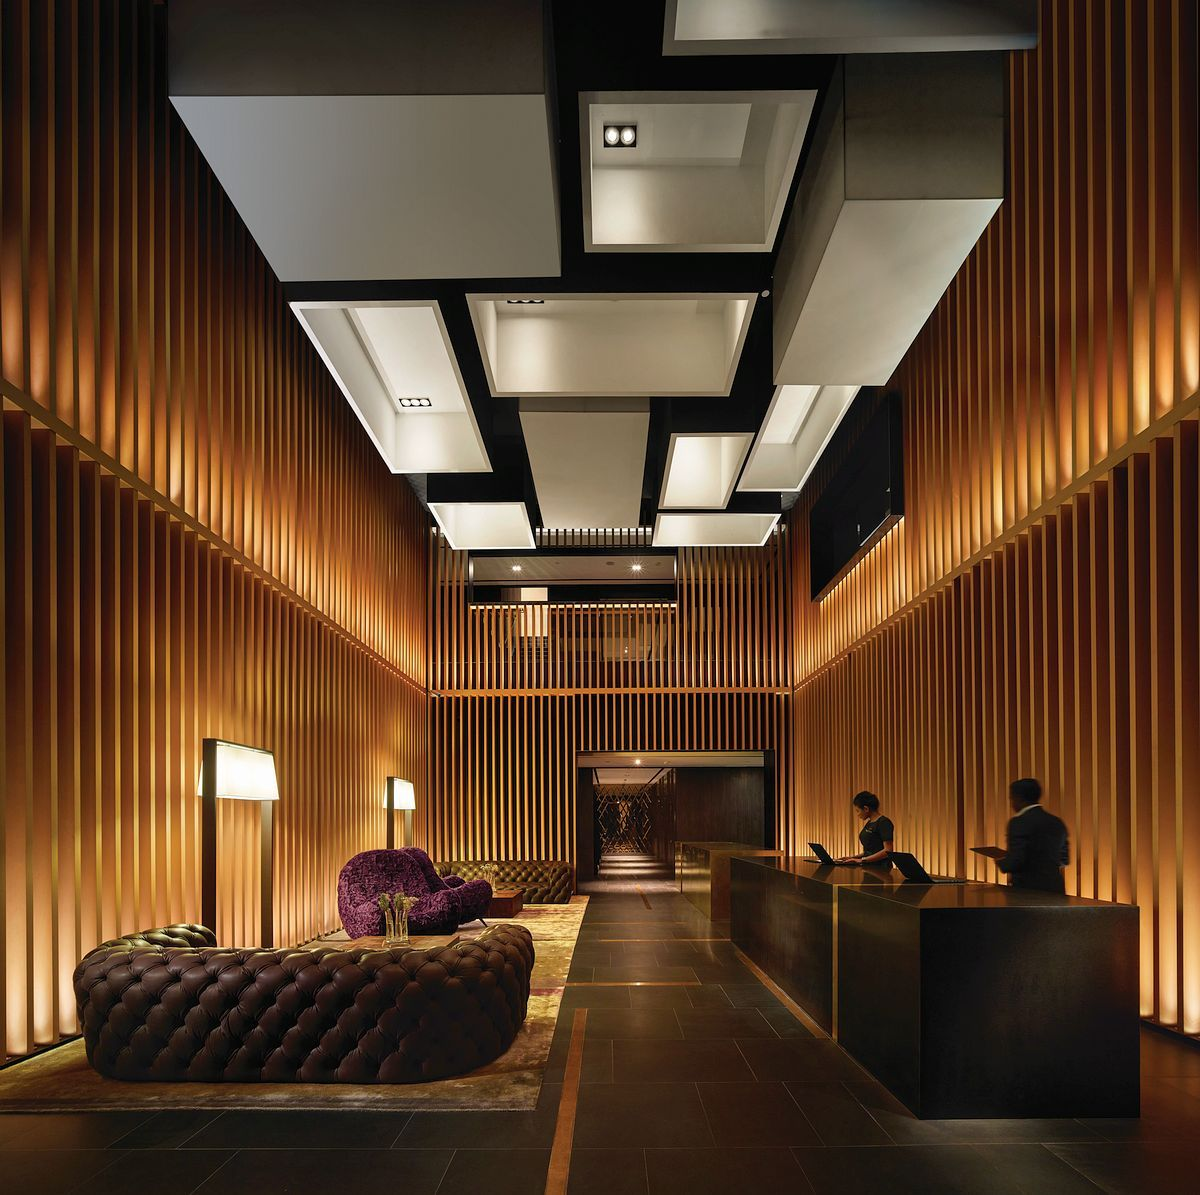 G Hotel Kelawai Malaysia With Its Exquisite Lobby Design